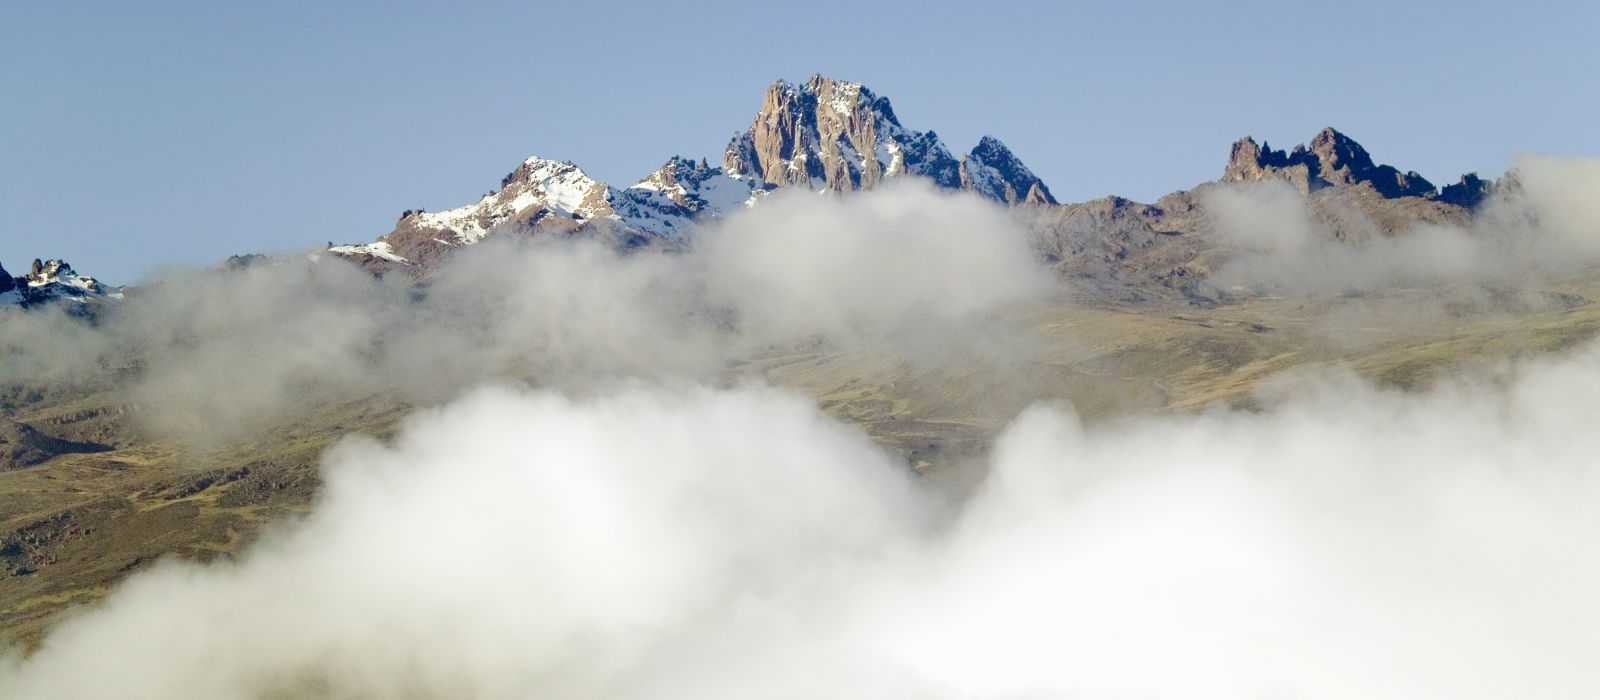 Aerial of Mount Kenya, Africa with snow and white puffy clouds in January